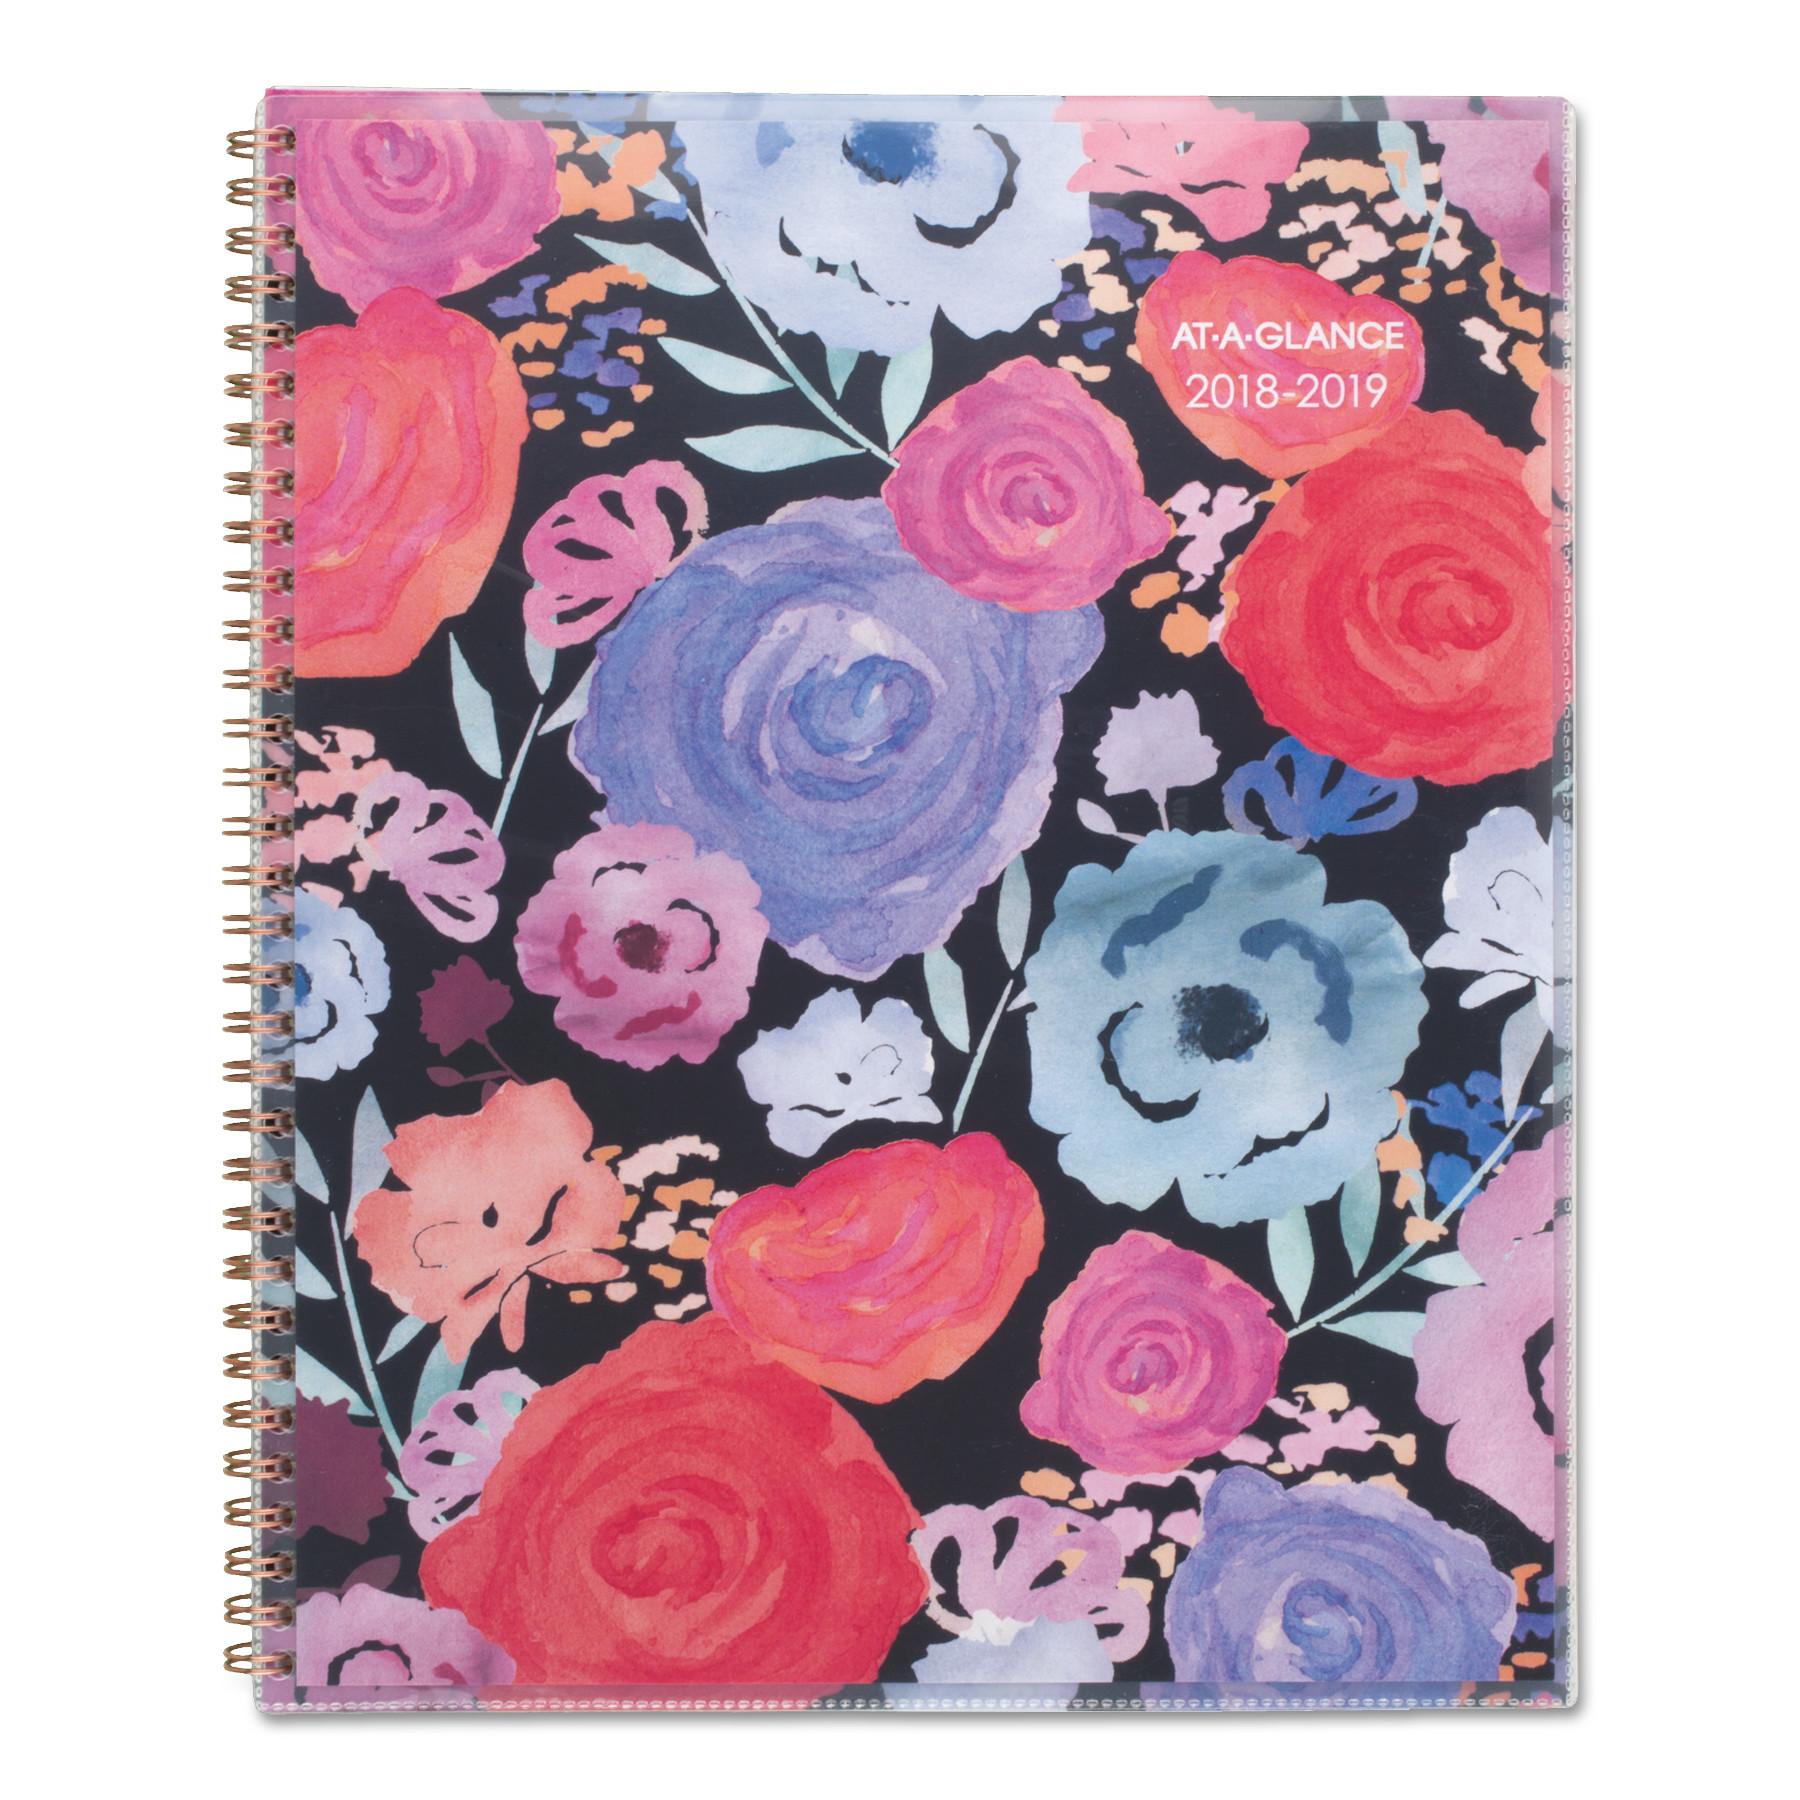 AT-A-GLANCE Academic Planners, 11 x 8 1/2, Midnight Rose, 2018-2019 -AAG1101901A